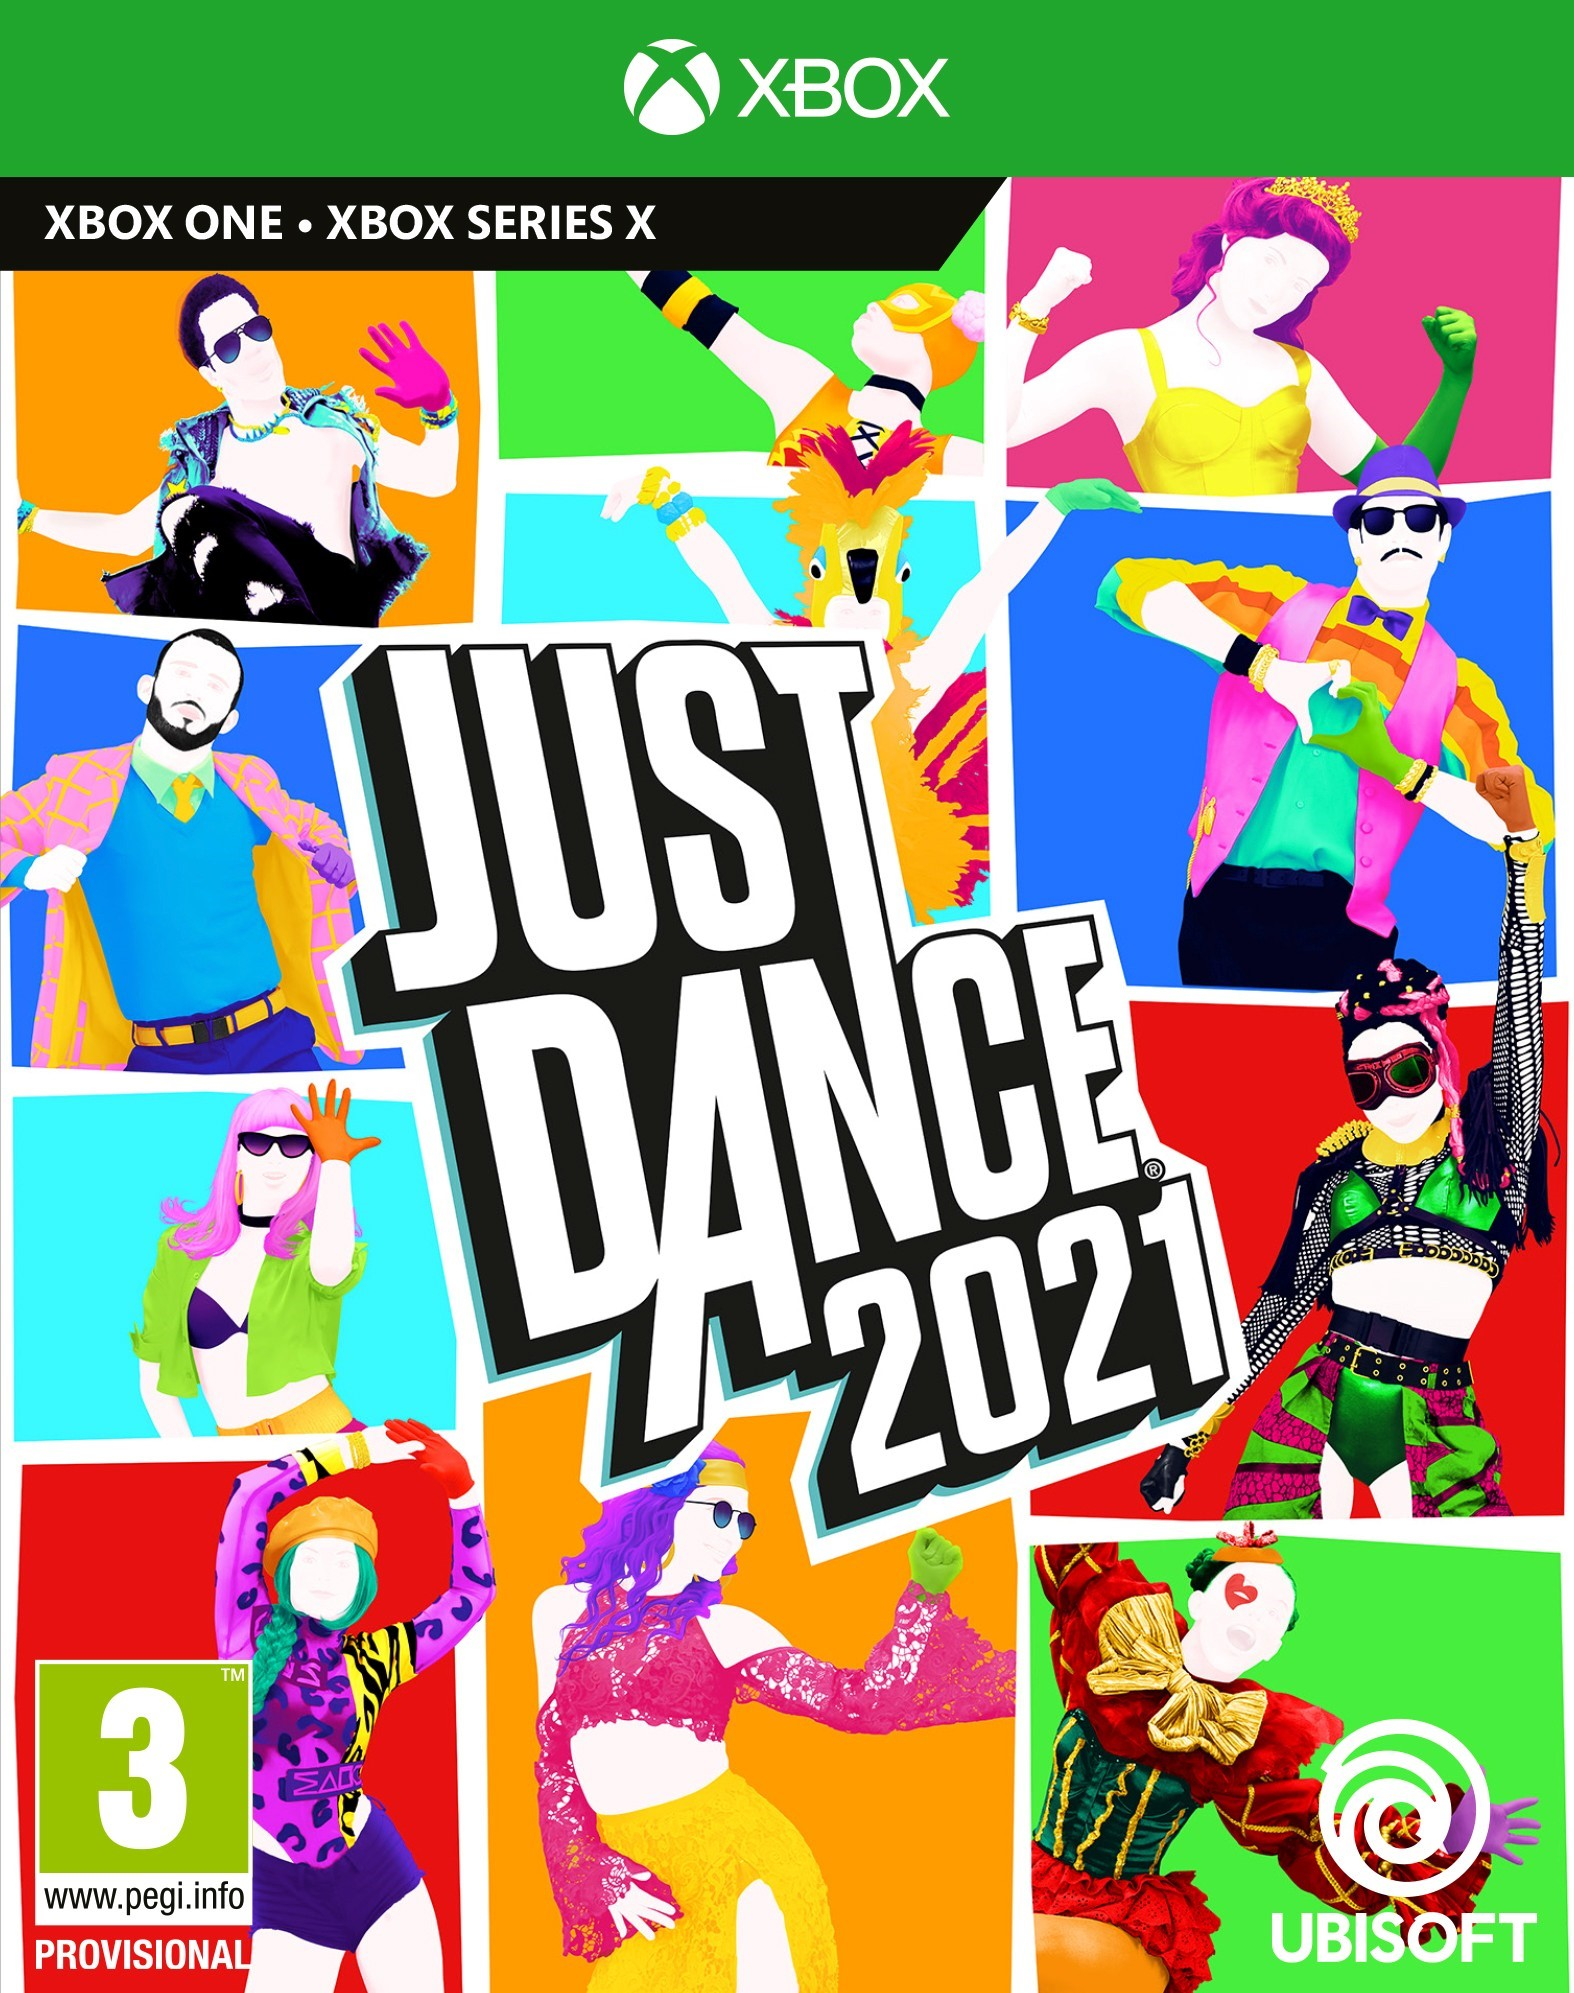 Just Dance 2021 (XB1/XBSX)